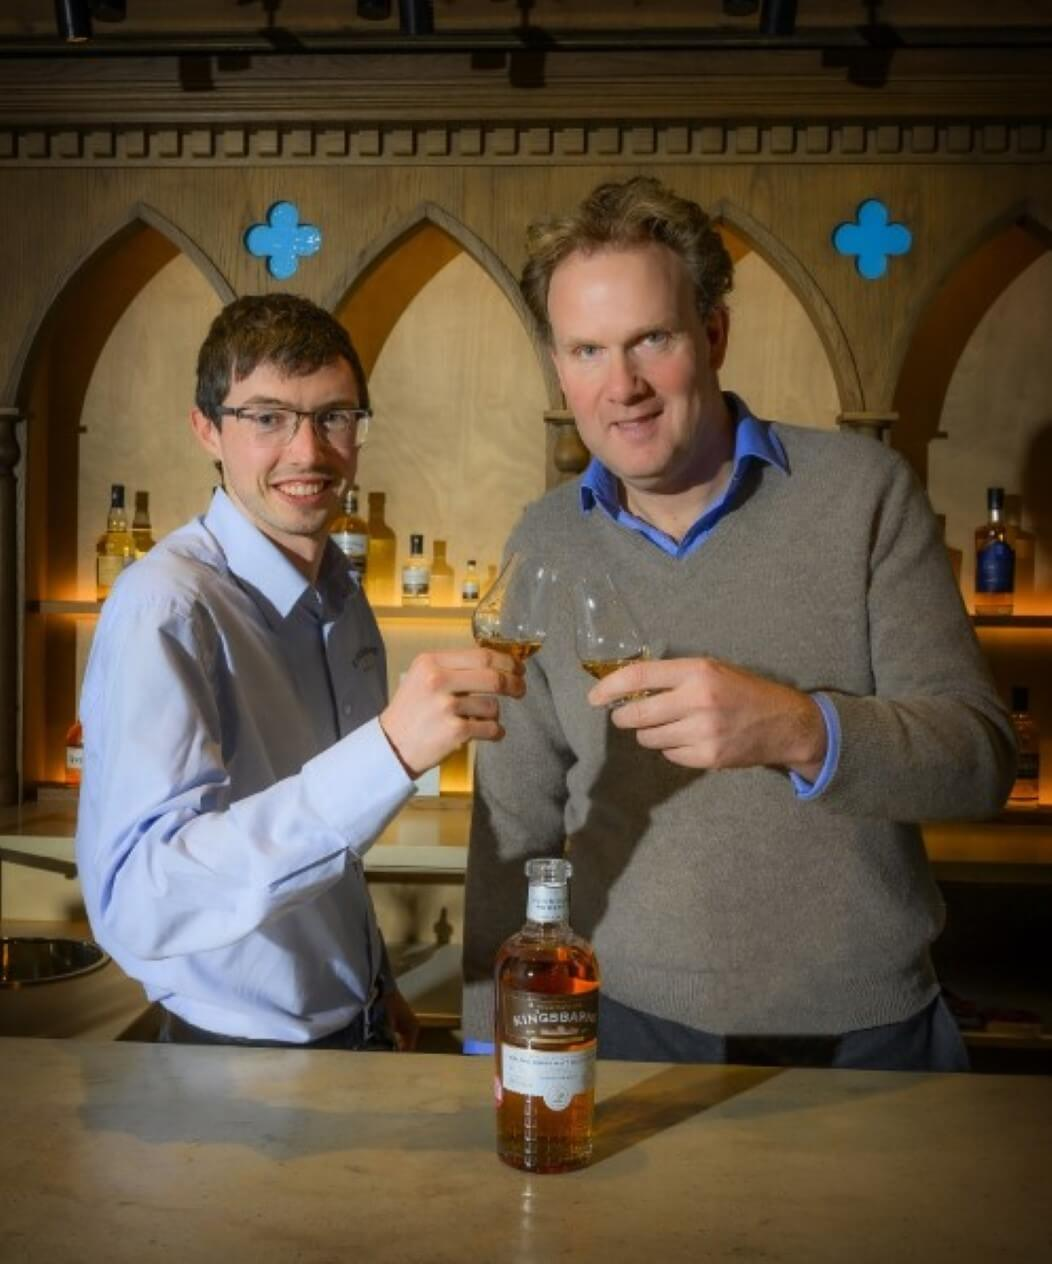 L – R is Peter Holroyd the Distillery Manager and William Wemyss from the Wemyss Family